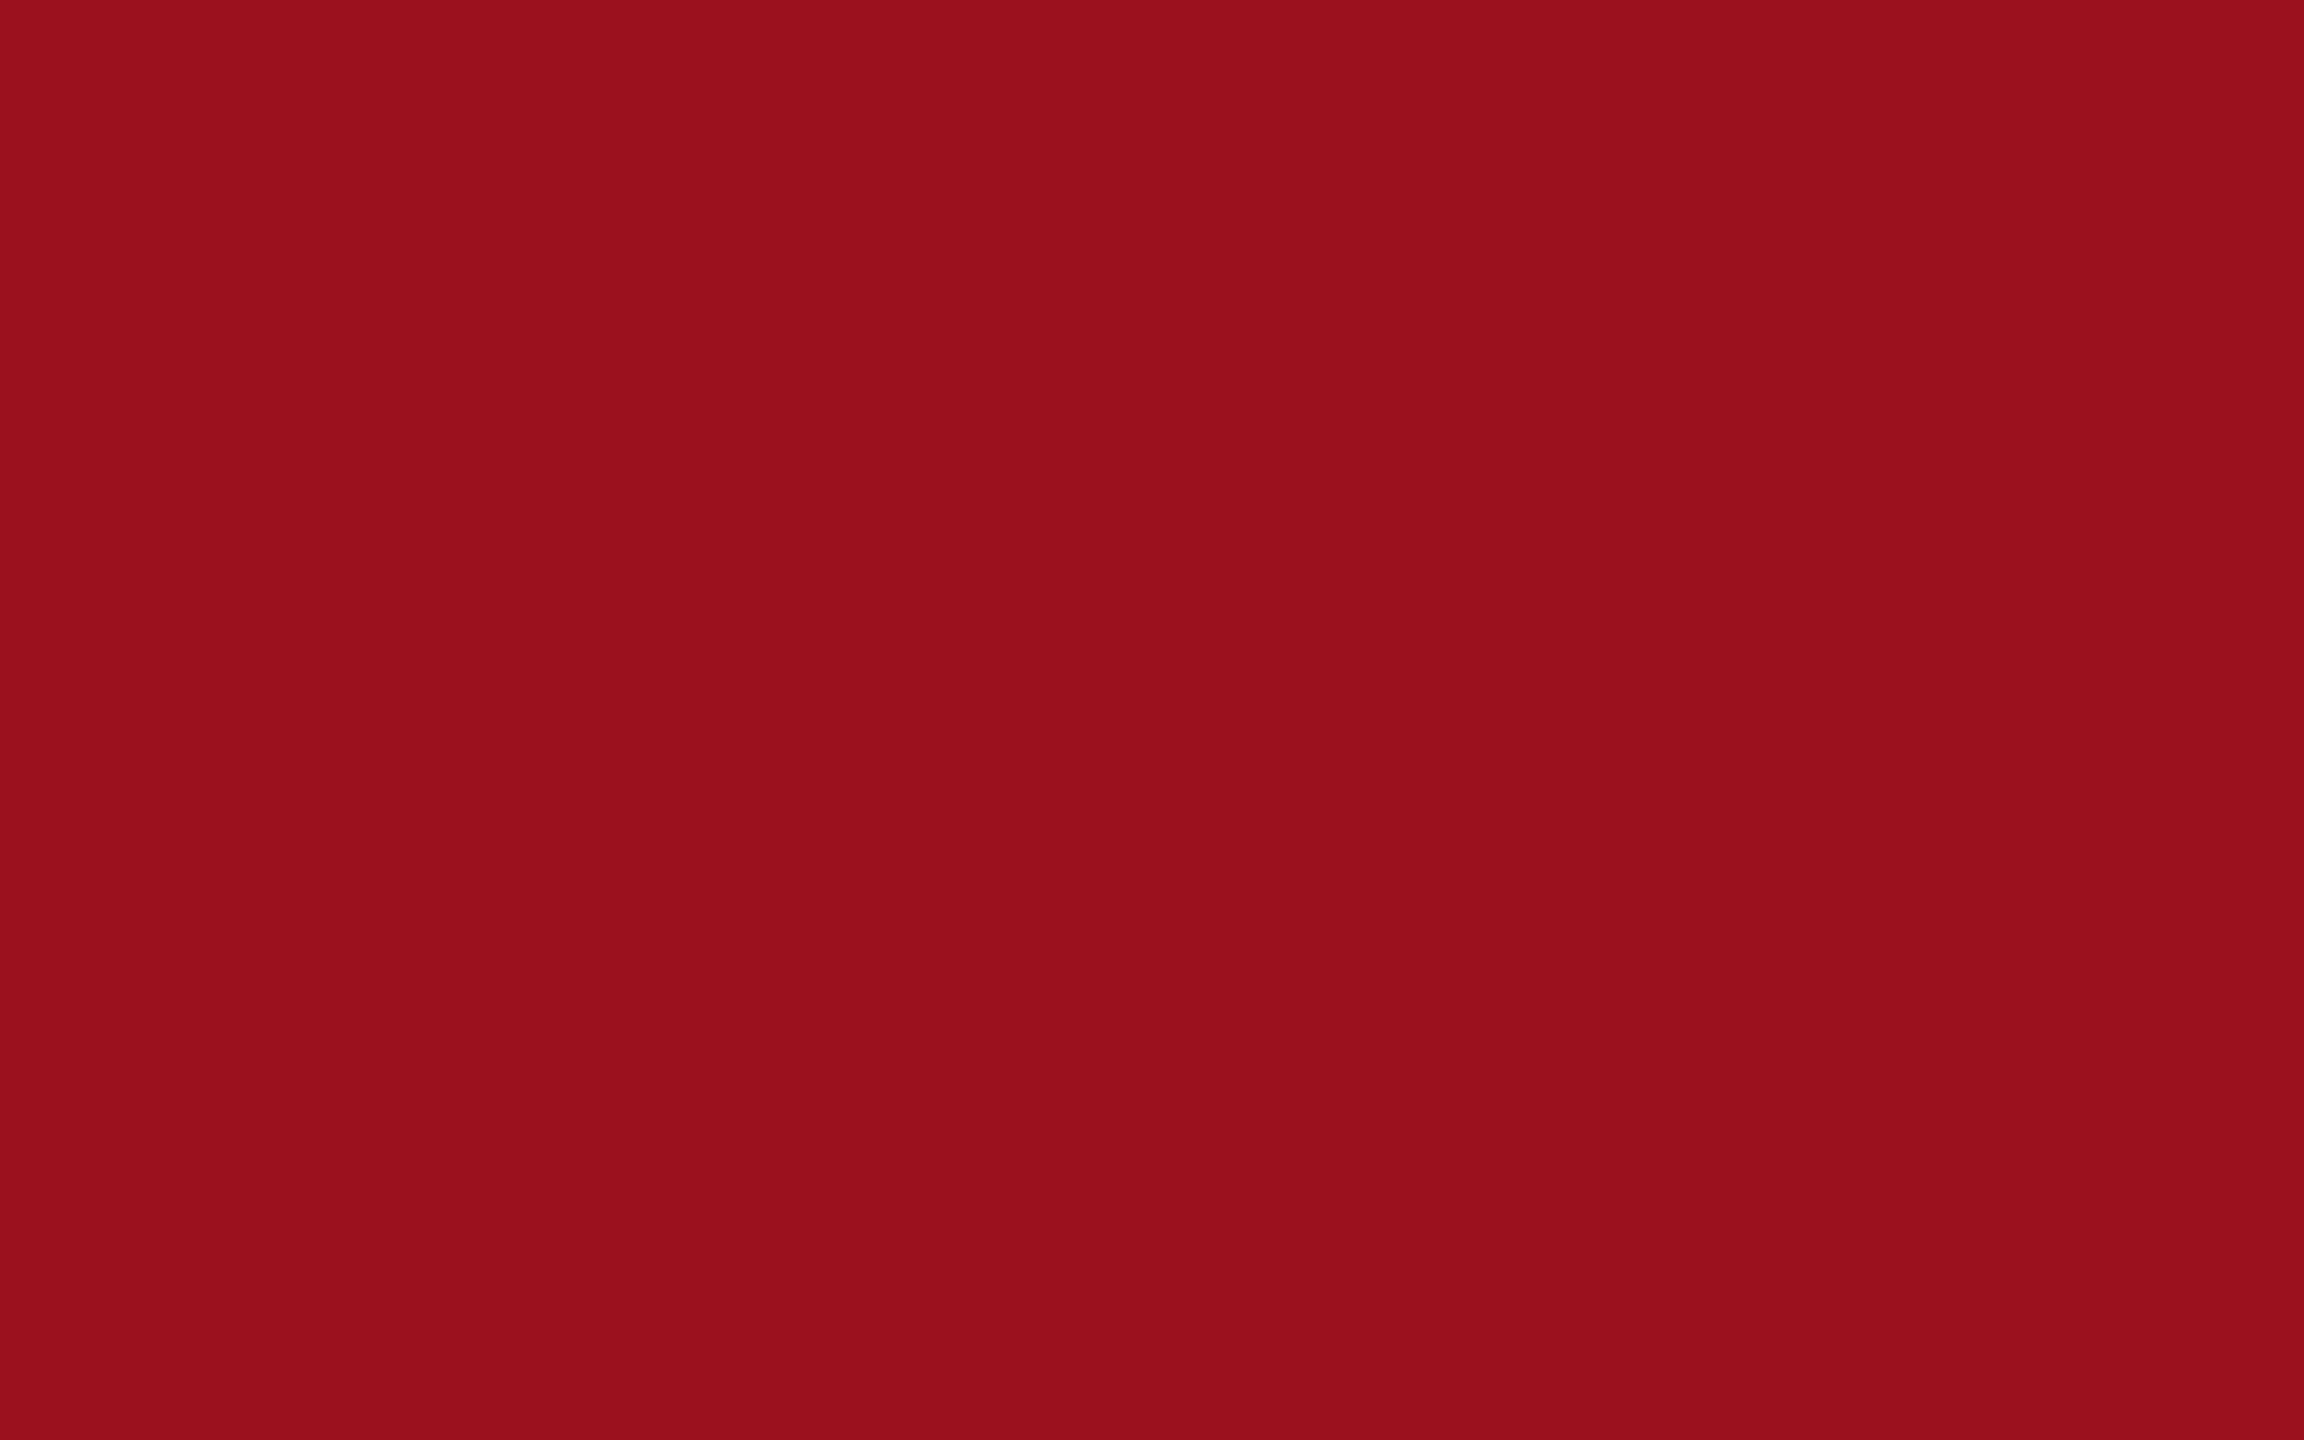 2304x1440 Ruby Red Solid Color Background